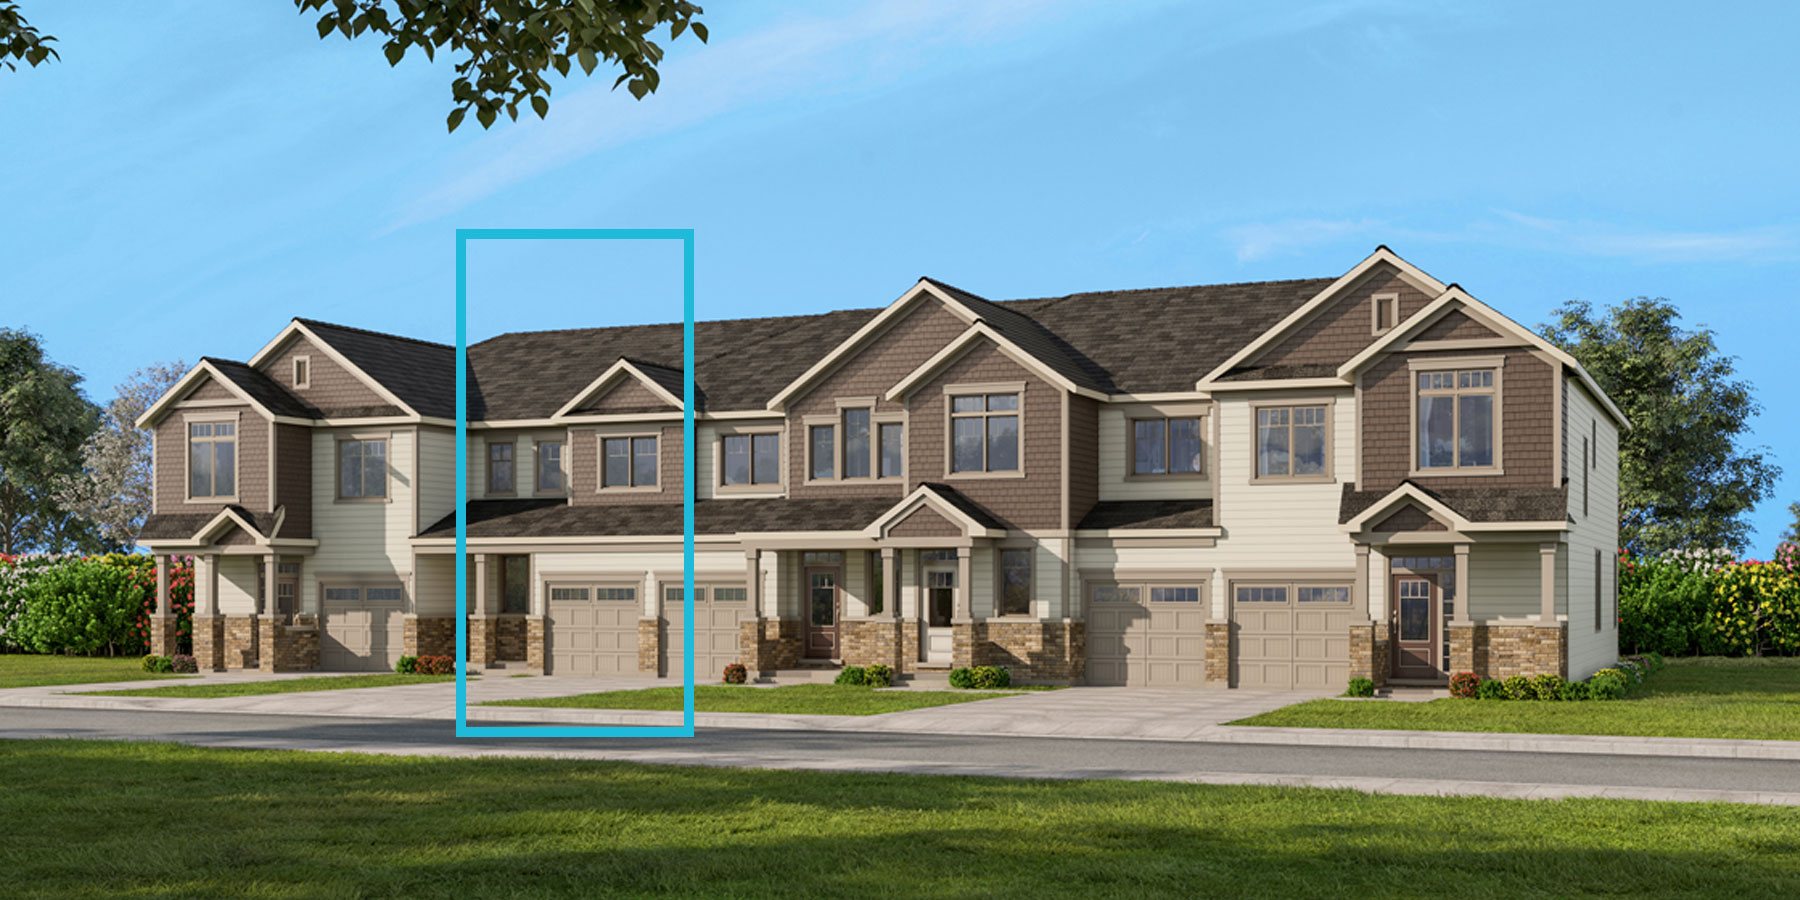 Fir Plan TownHomes at Connections In Kanata in Kanata Ontario by Mattamy Homes